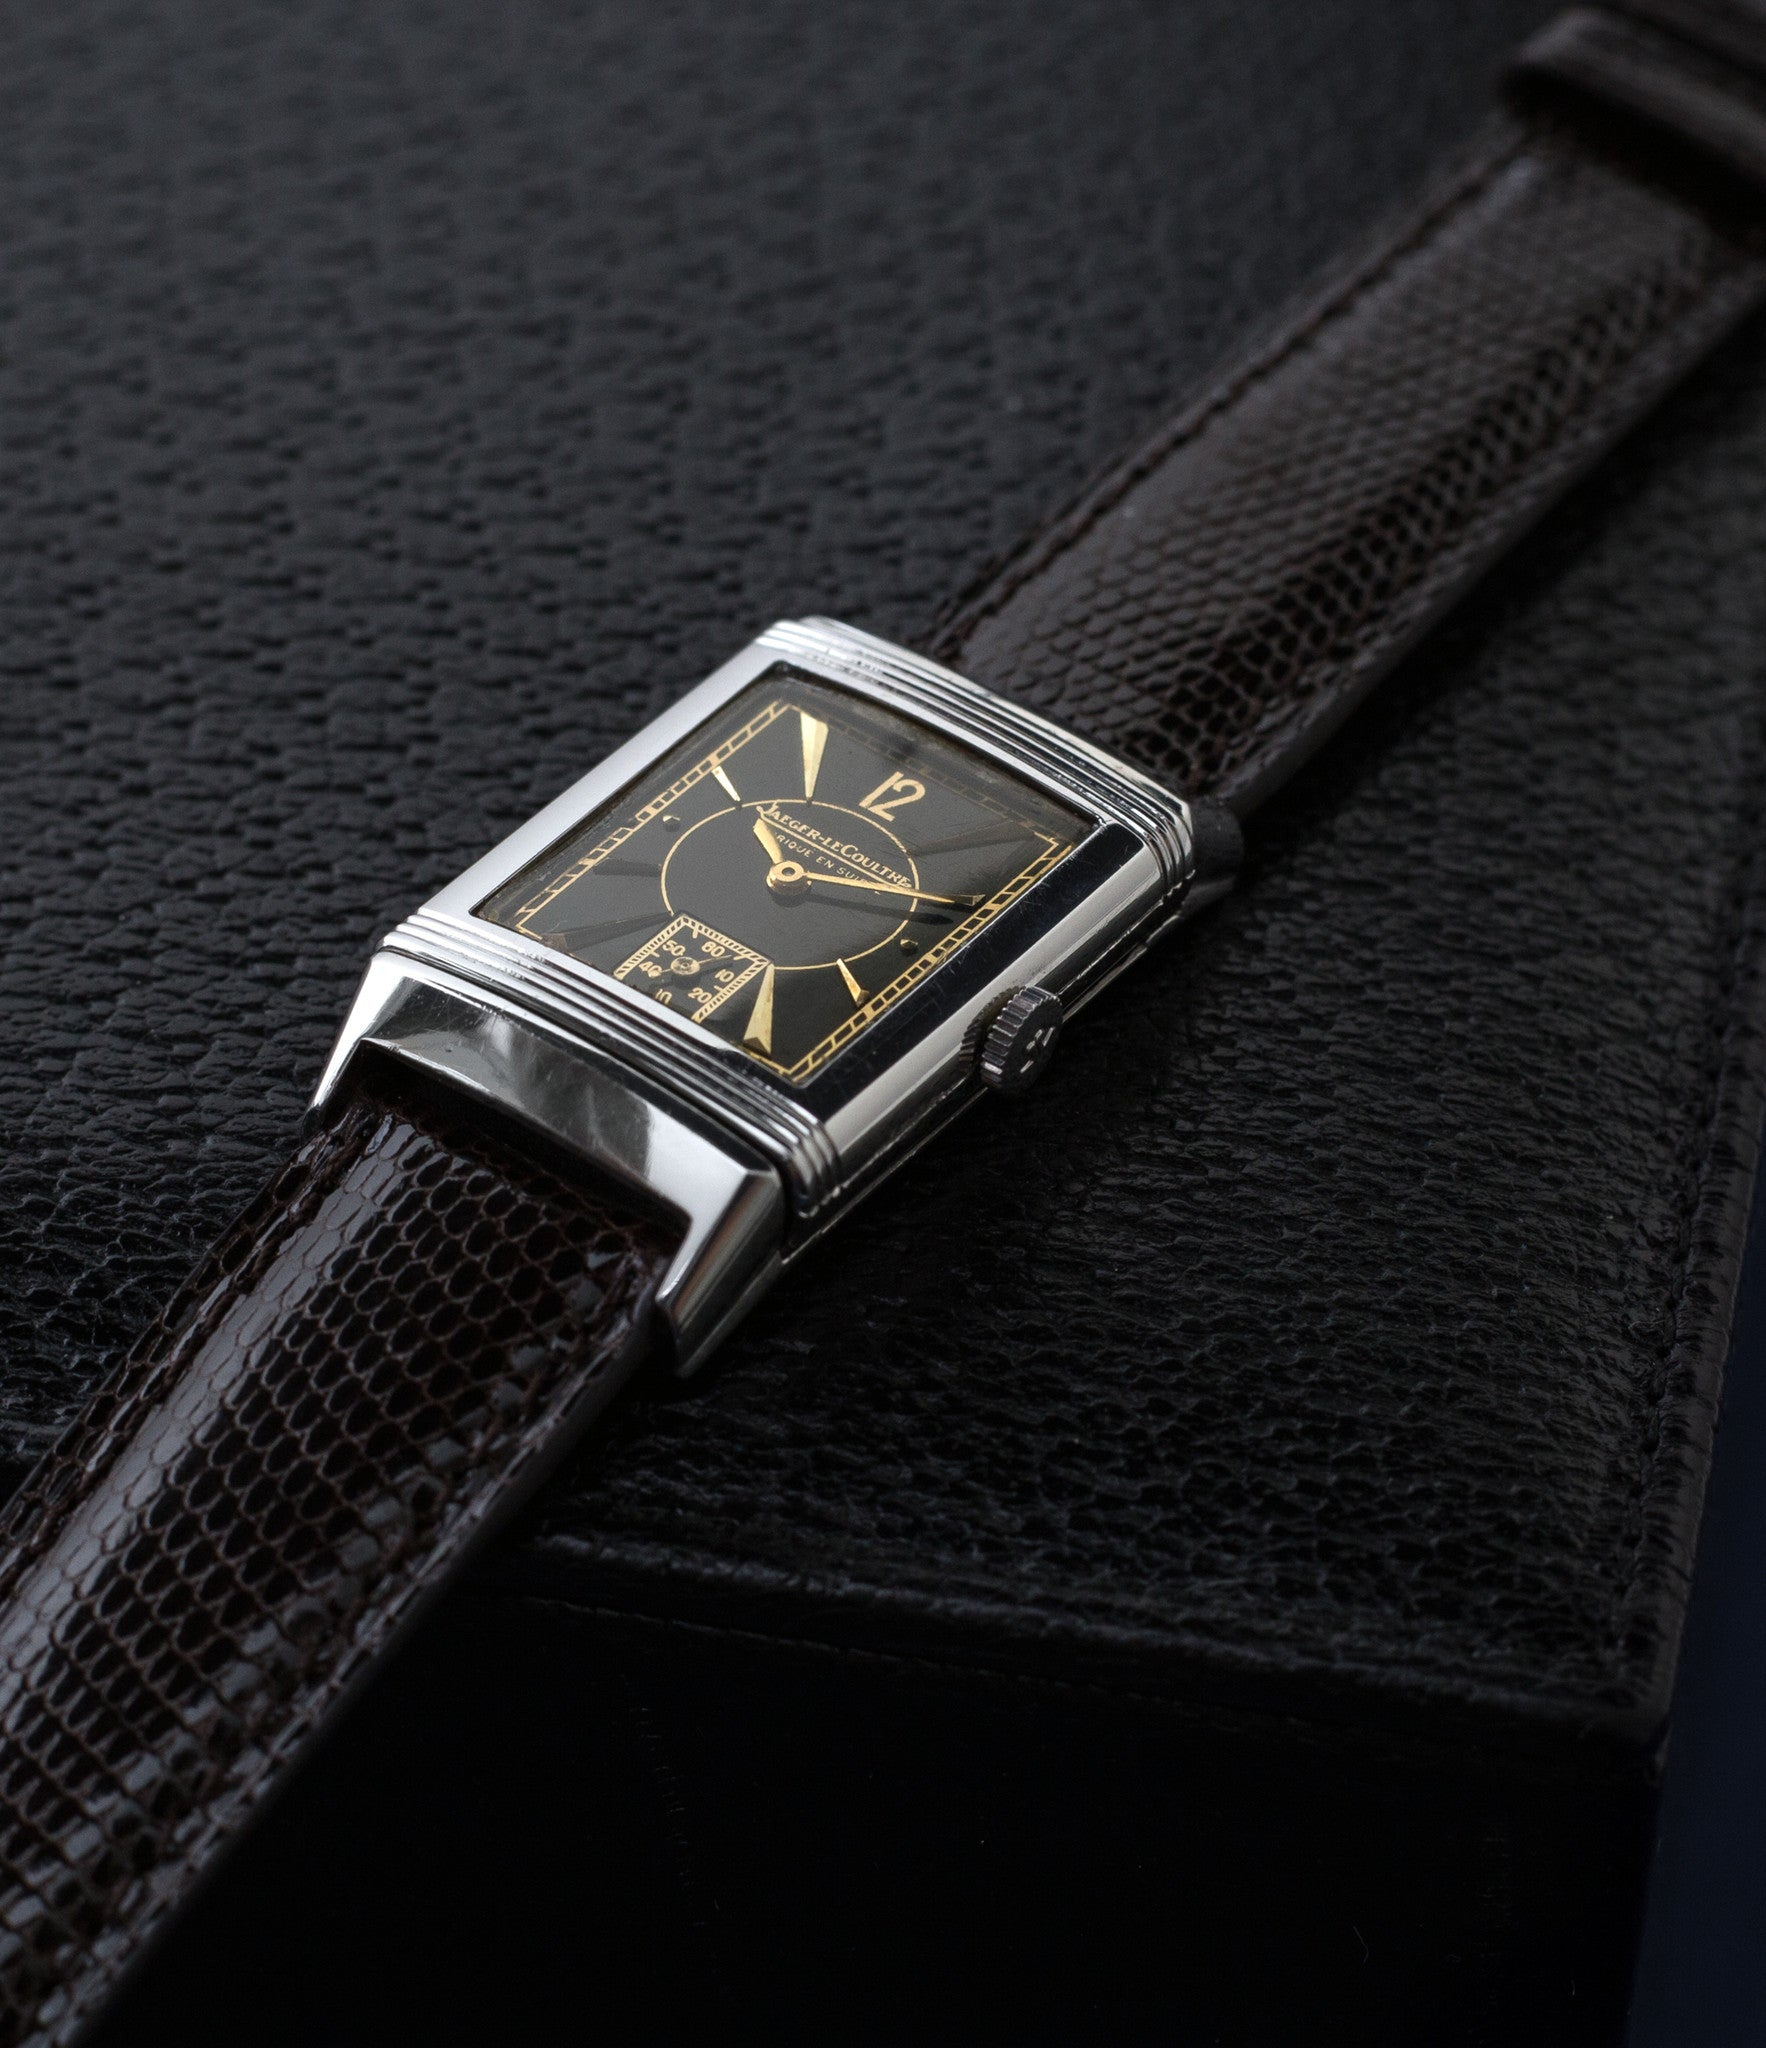 buy vintage Jaeger-LeCoultre Reverso stainless steel black unrestored dial with gold rare watch with authenticity guaranteed for sale online WATCH XCHANGE Londonbuy vintage Jaeger-LeCoultre Reverso stainless steel black unrestored dial with gold rare watch with authenticity guaranteed for sale online WATCH XCHANGE London